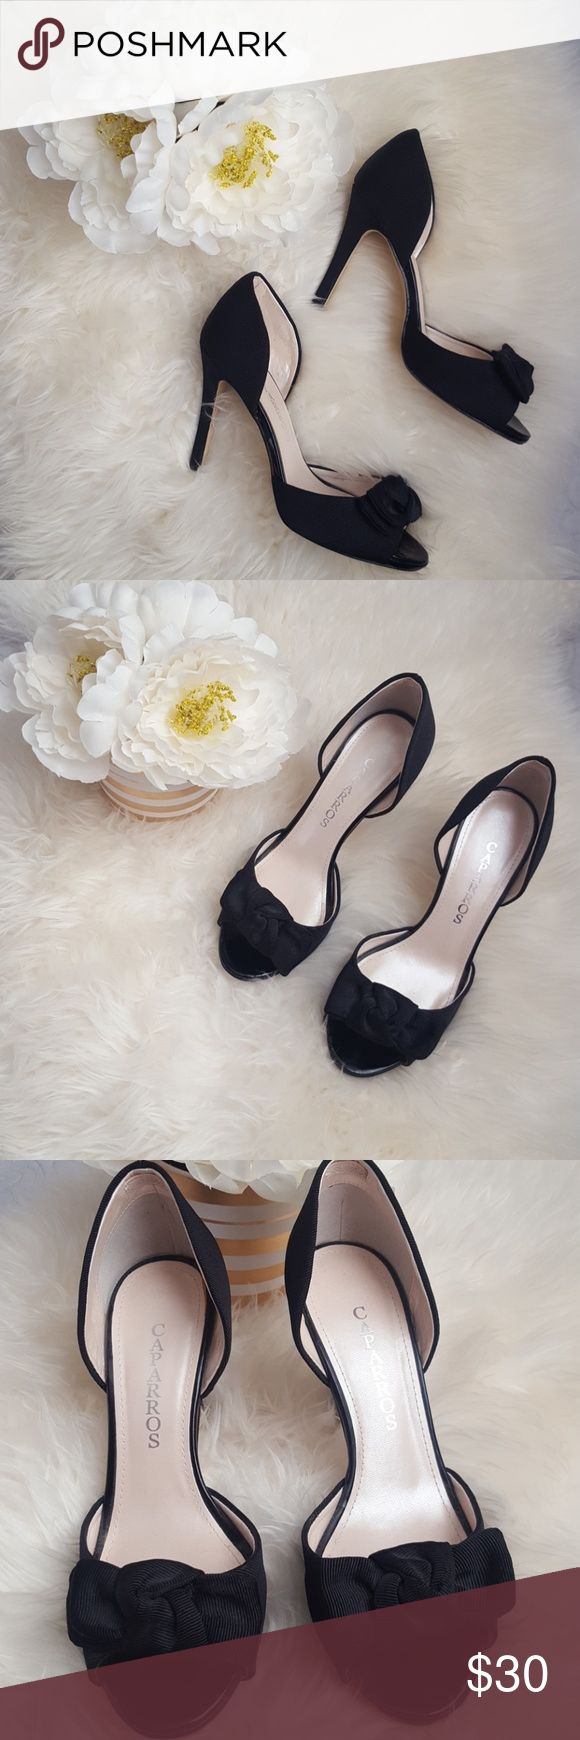 Pretty black heel with bow Shoe is in good condition overall with wear on the bottom of the heel. Open toe heel with bow. Caparros Shoes Heels